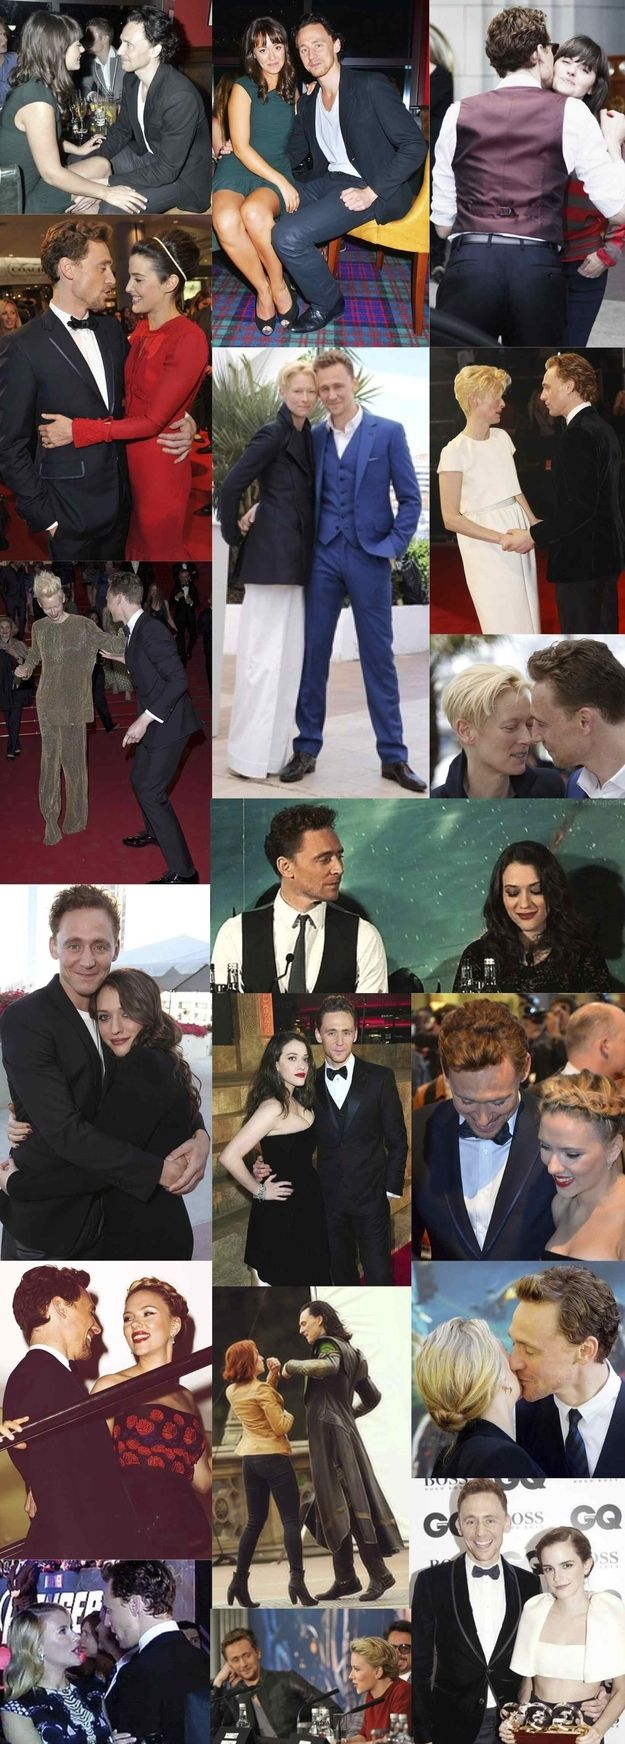 Tom Is Adorable With The Ladies | Community Post: This Post Will Destroy Your Life - Tom Hiddleston